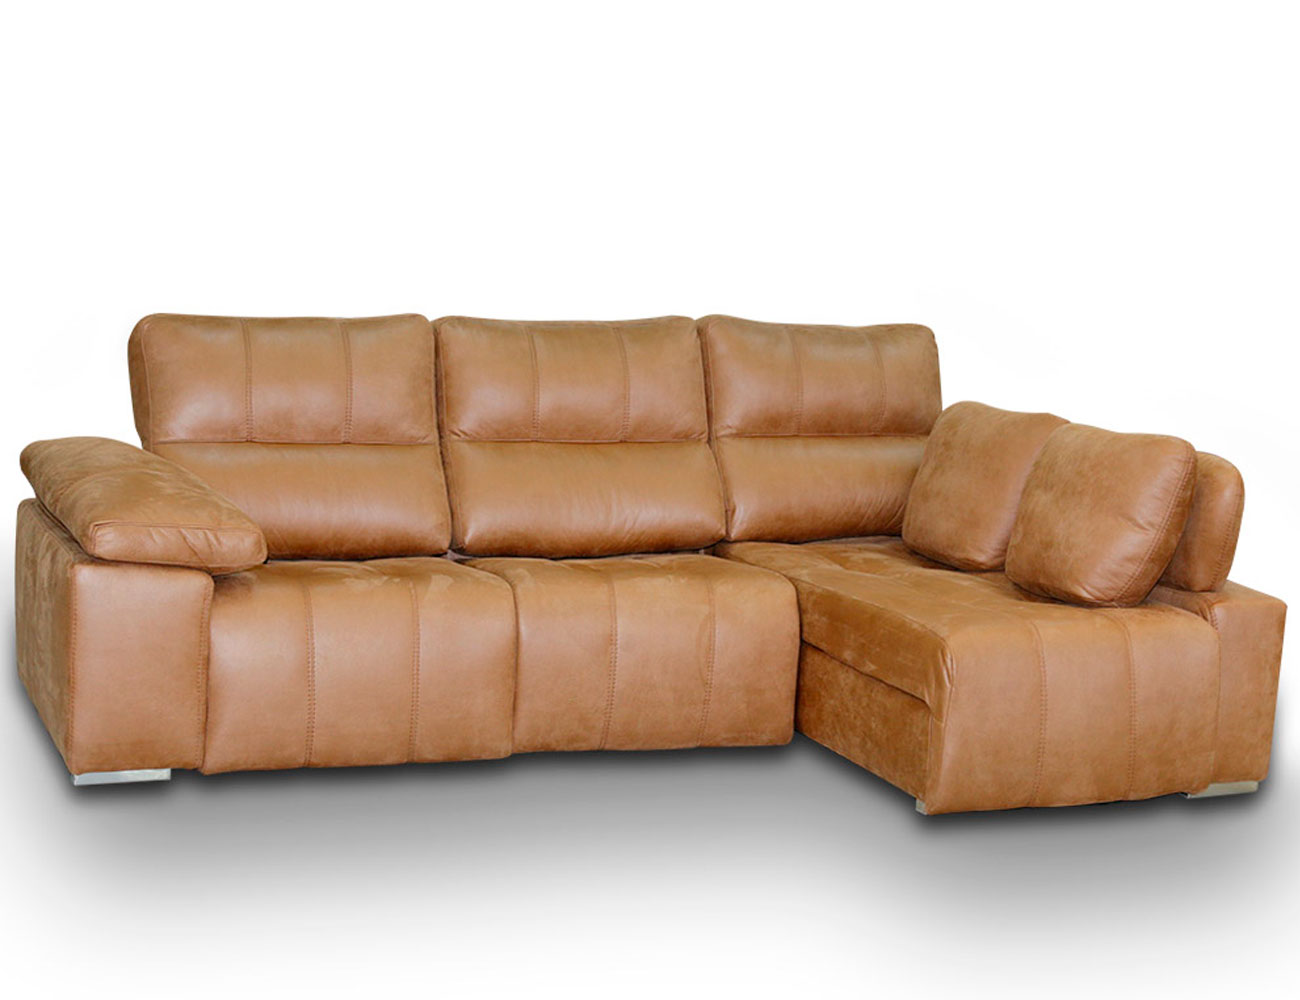 Sofa chaiselongue relax 2 motores anti manchas27